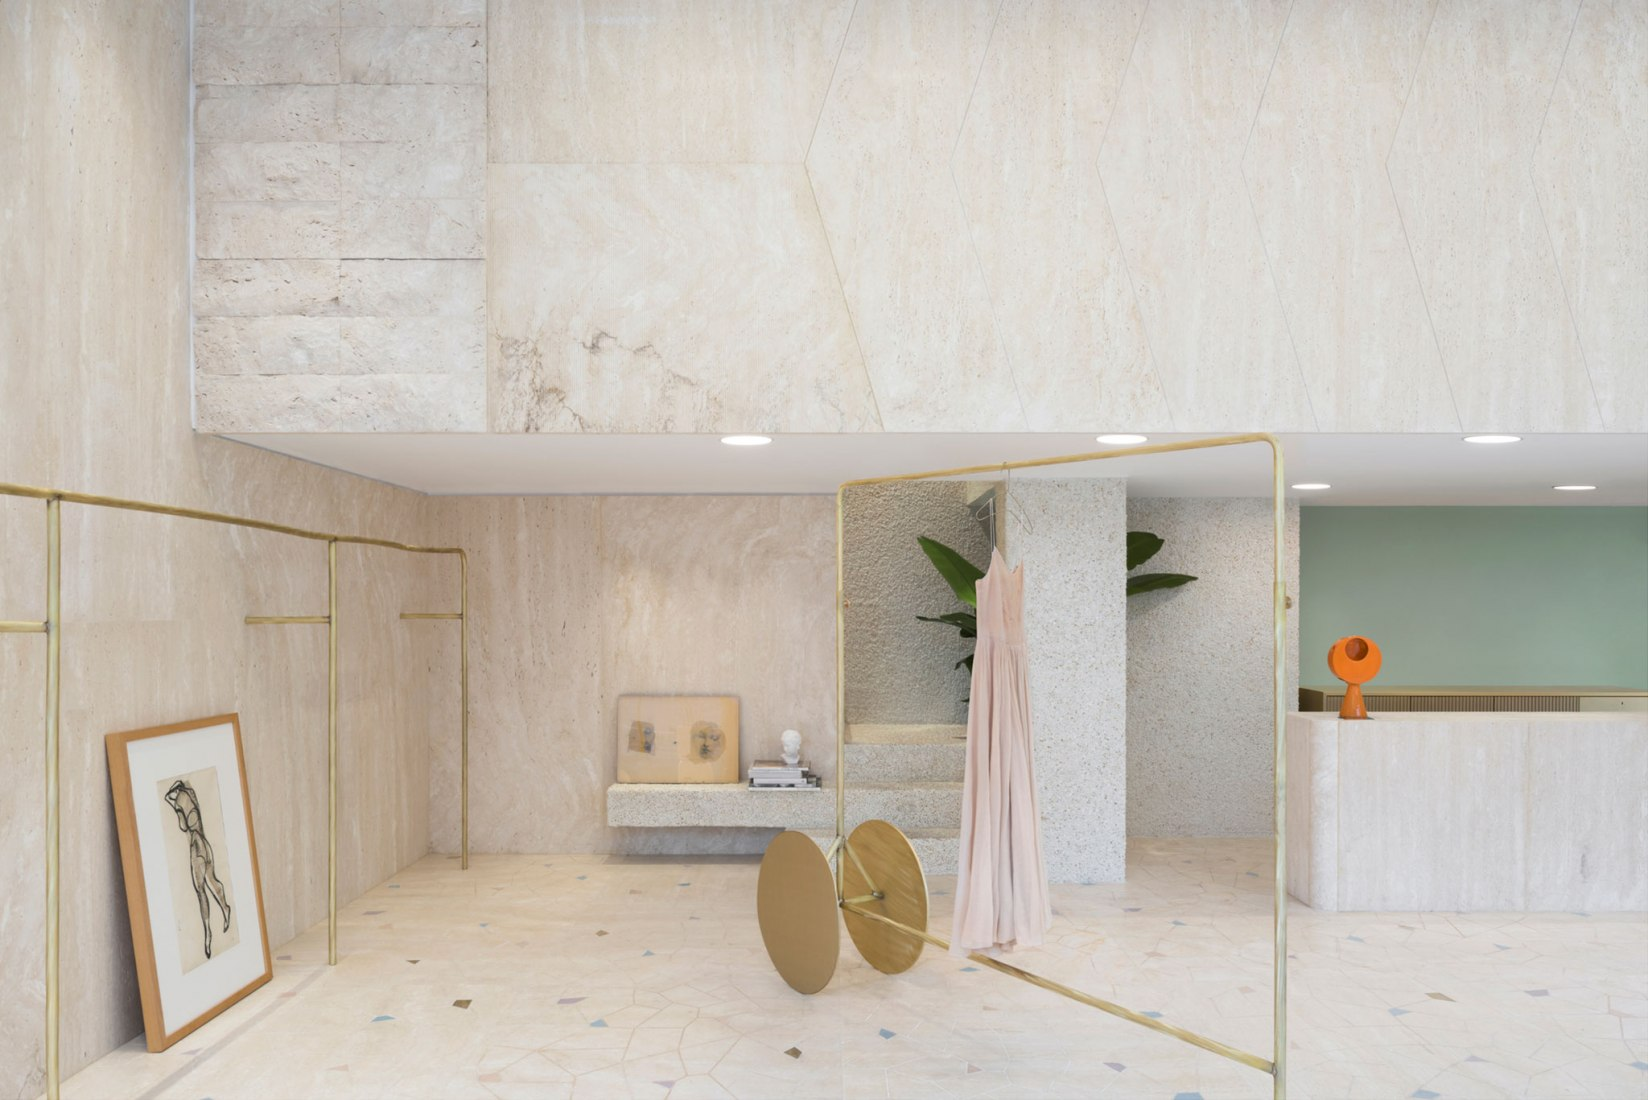 forte_forte first boutique in Milan by forte_forte. Photograph by Paola Pansini